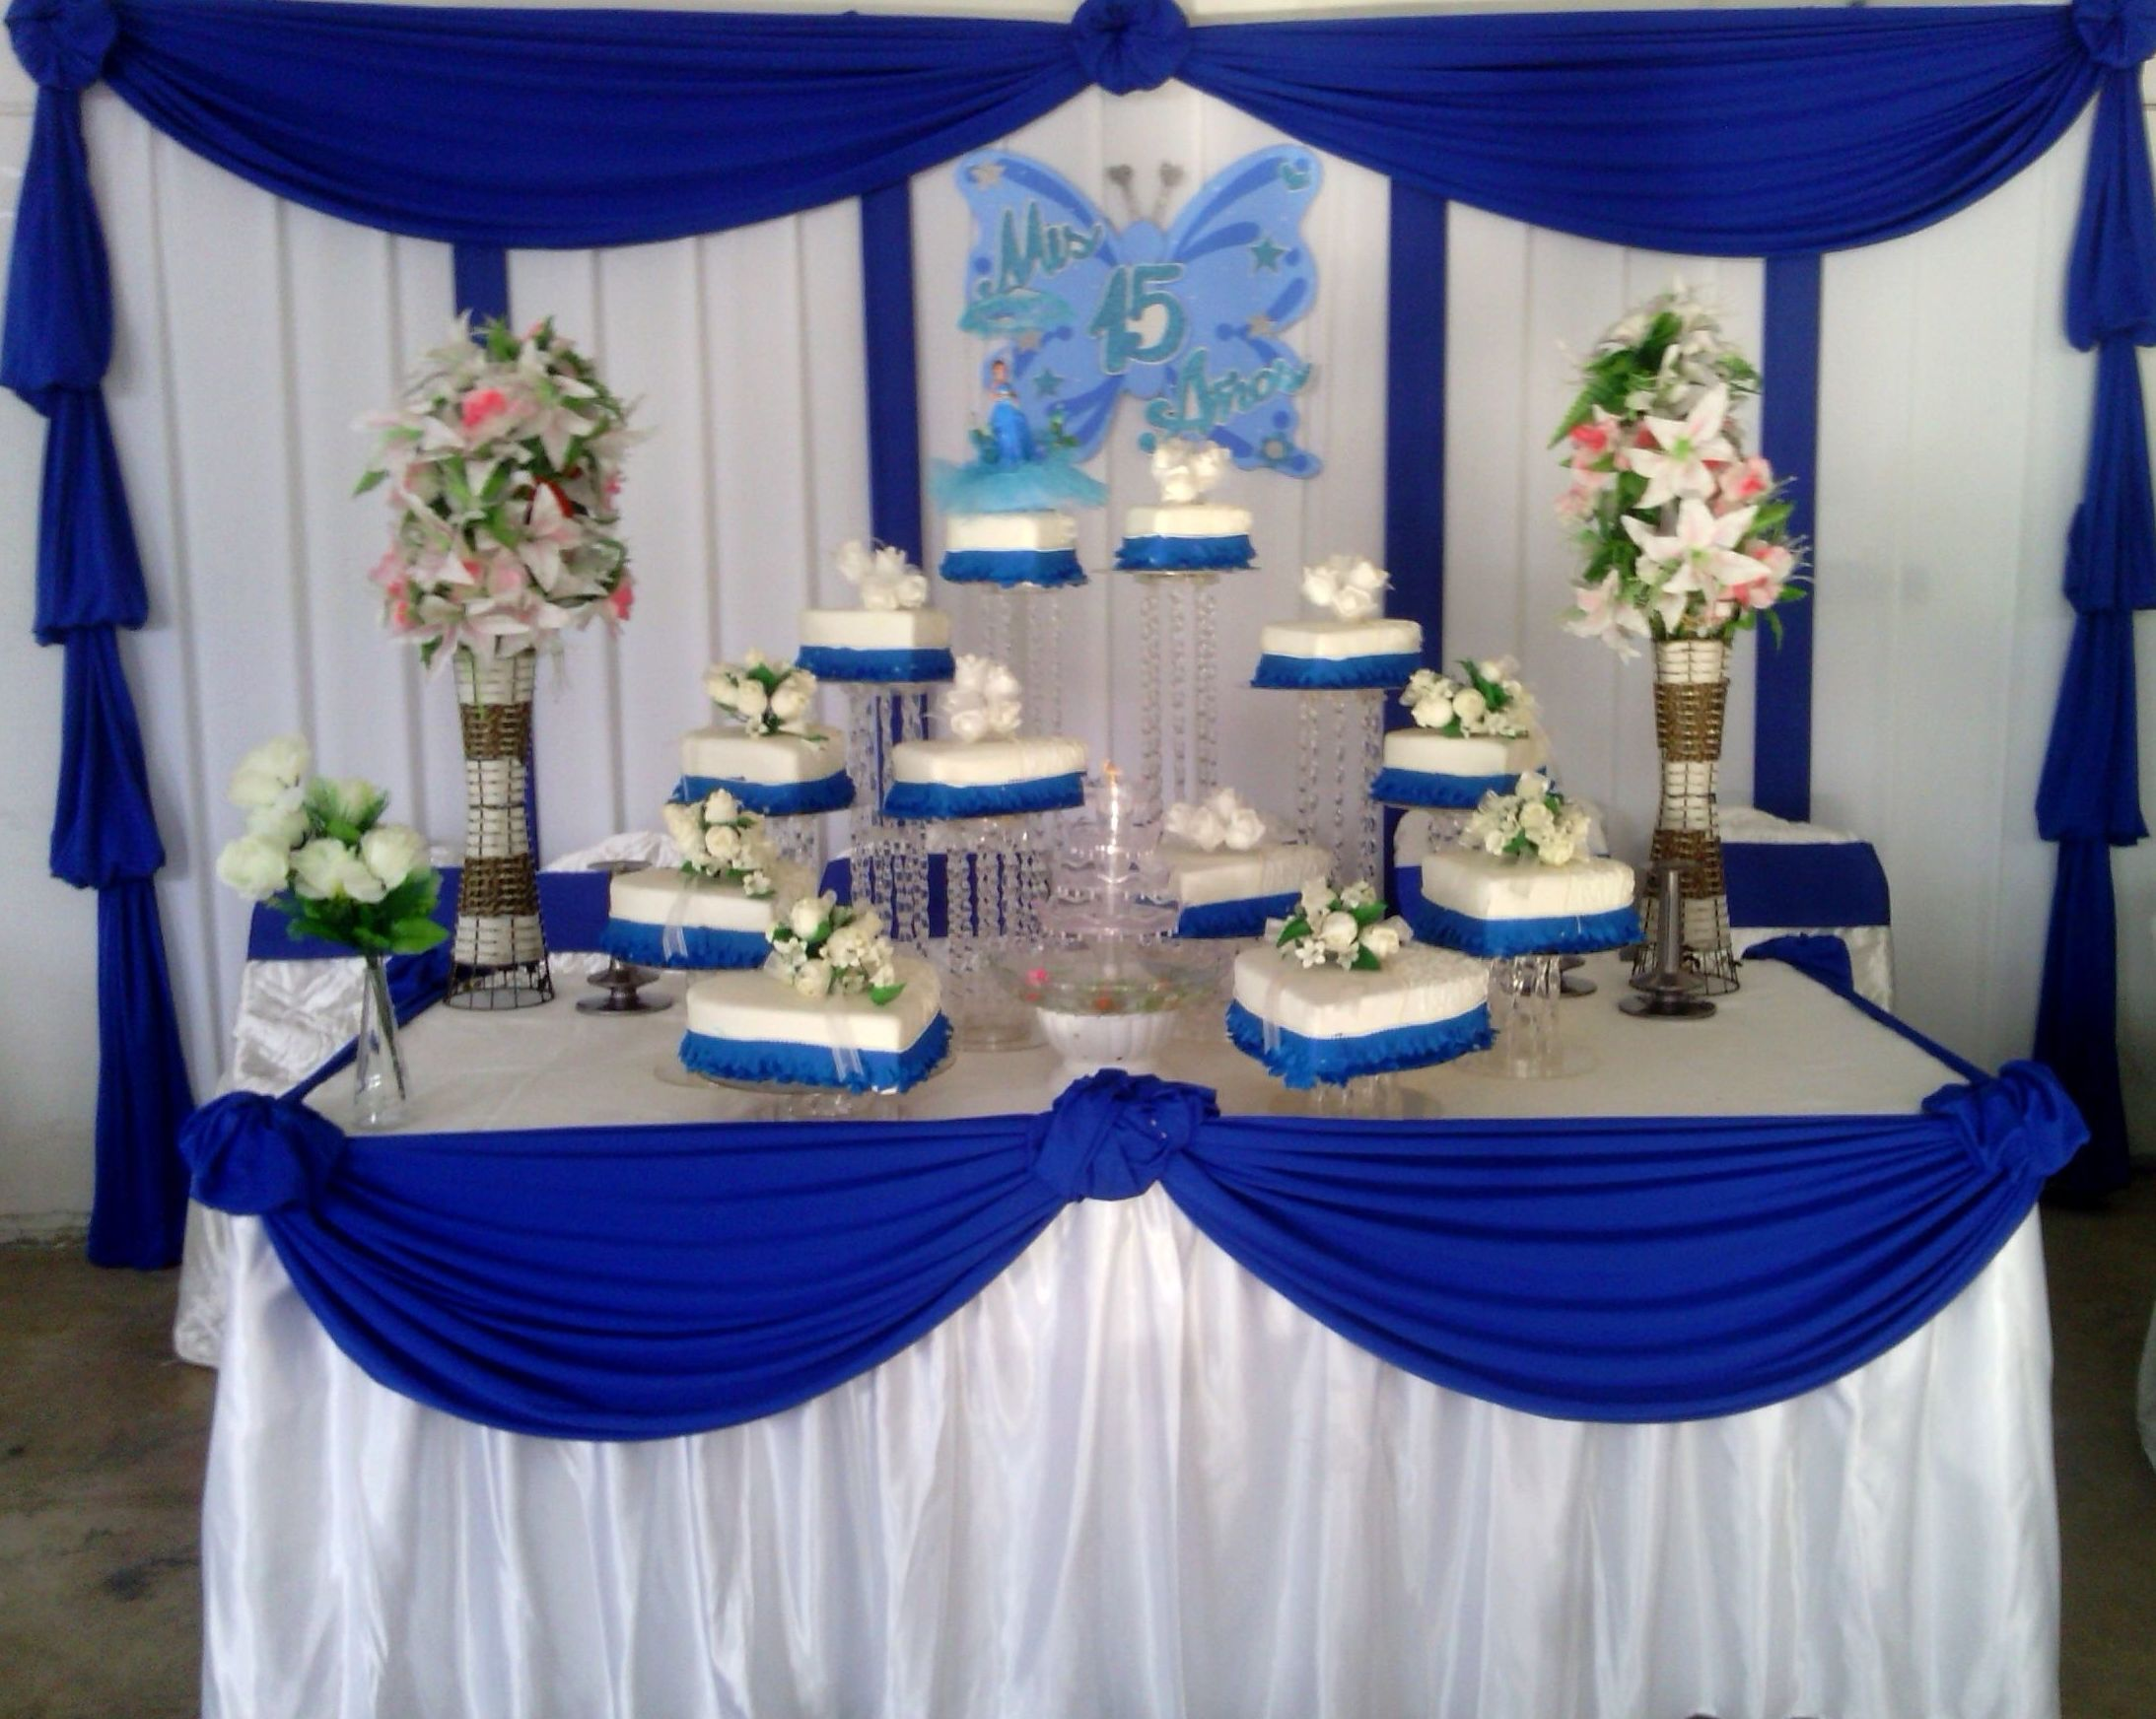 Decoraciones en color azul especial para quince a os for Ideas para decorar fiestas de 15